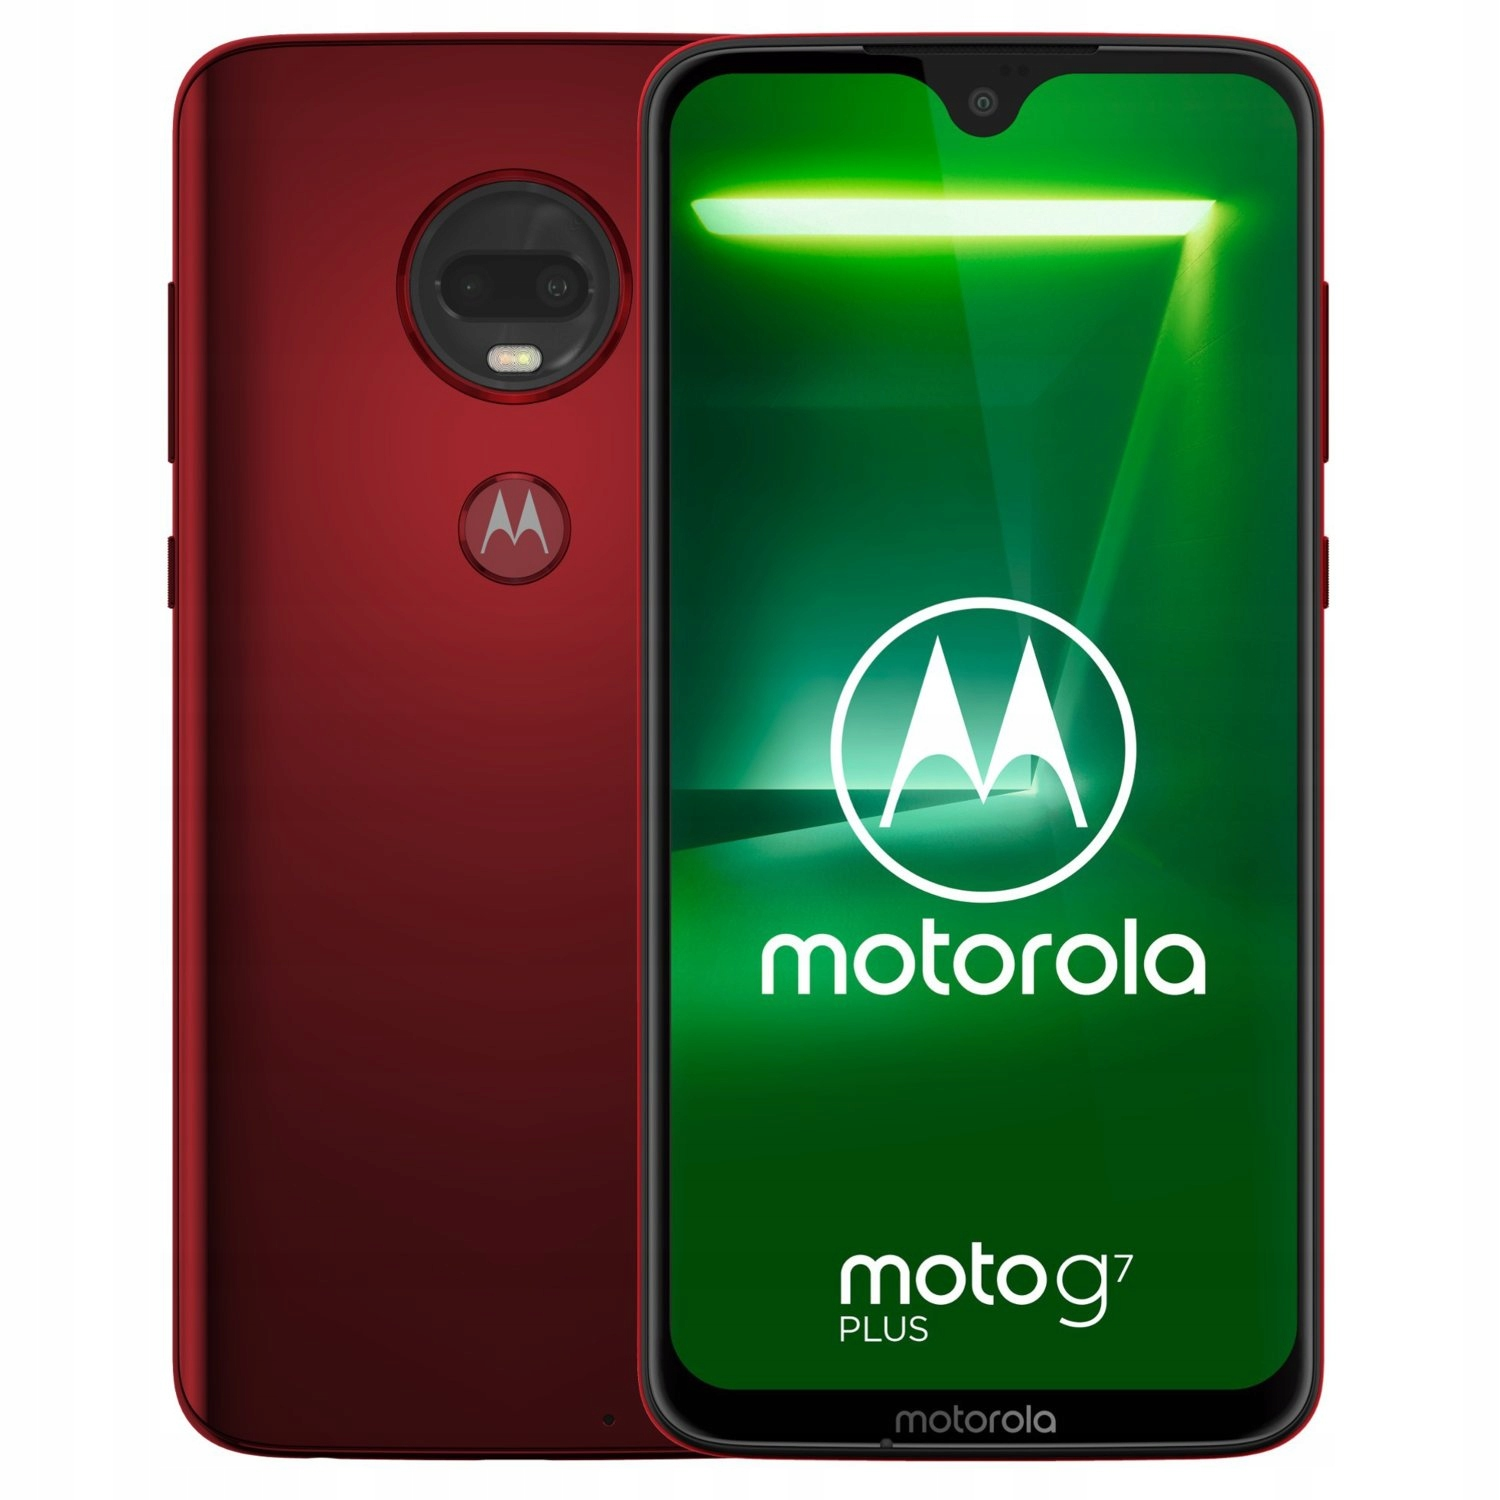 PETEL Motorola Moto G7 Plus 4/64GB Dual LTE Red GW